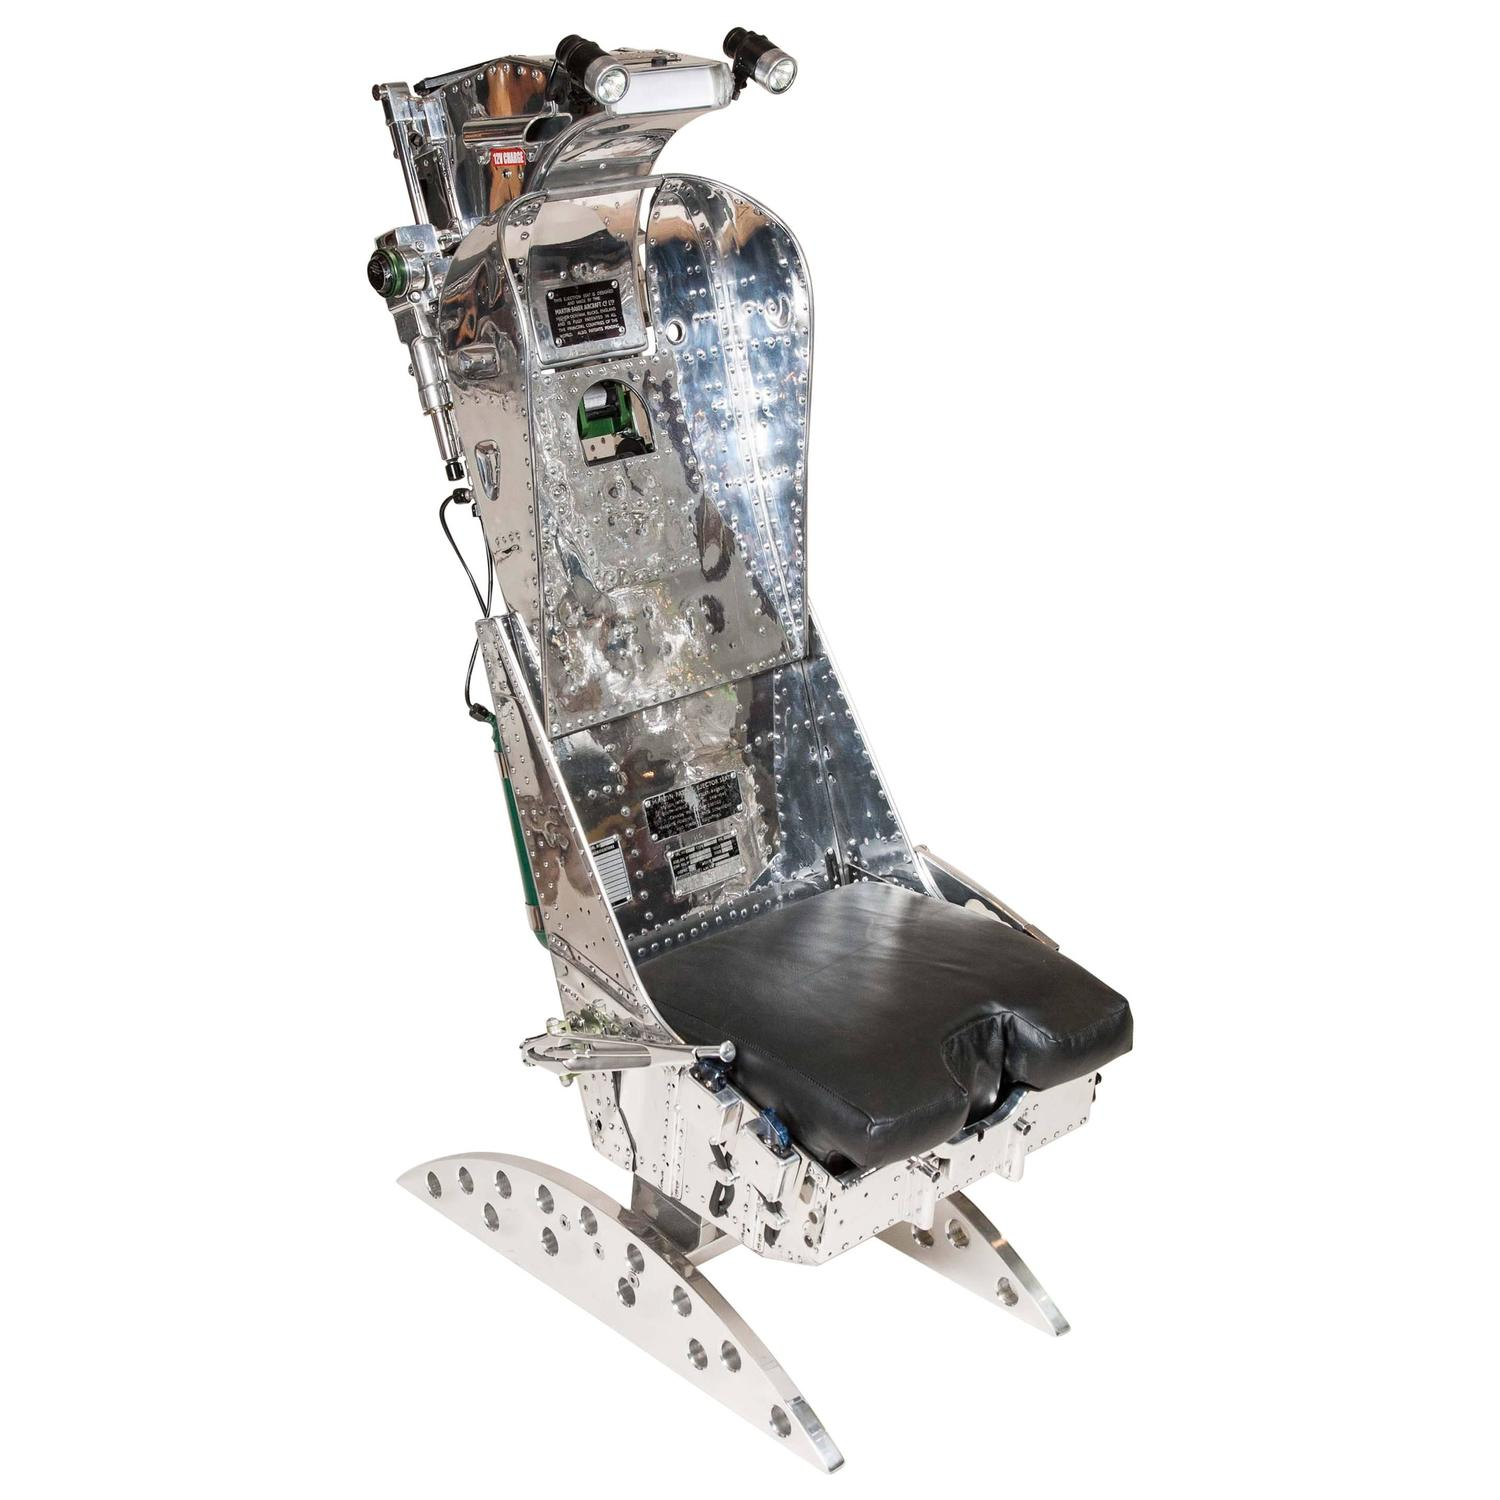 ejection seat office chair nook tables and chairs hawker hunter by martin baker for sale at